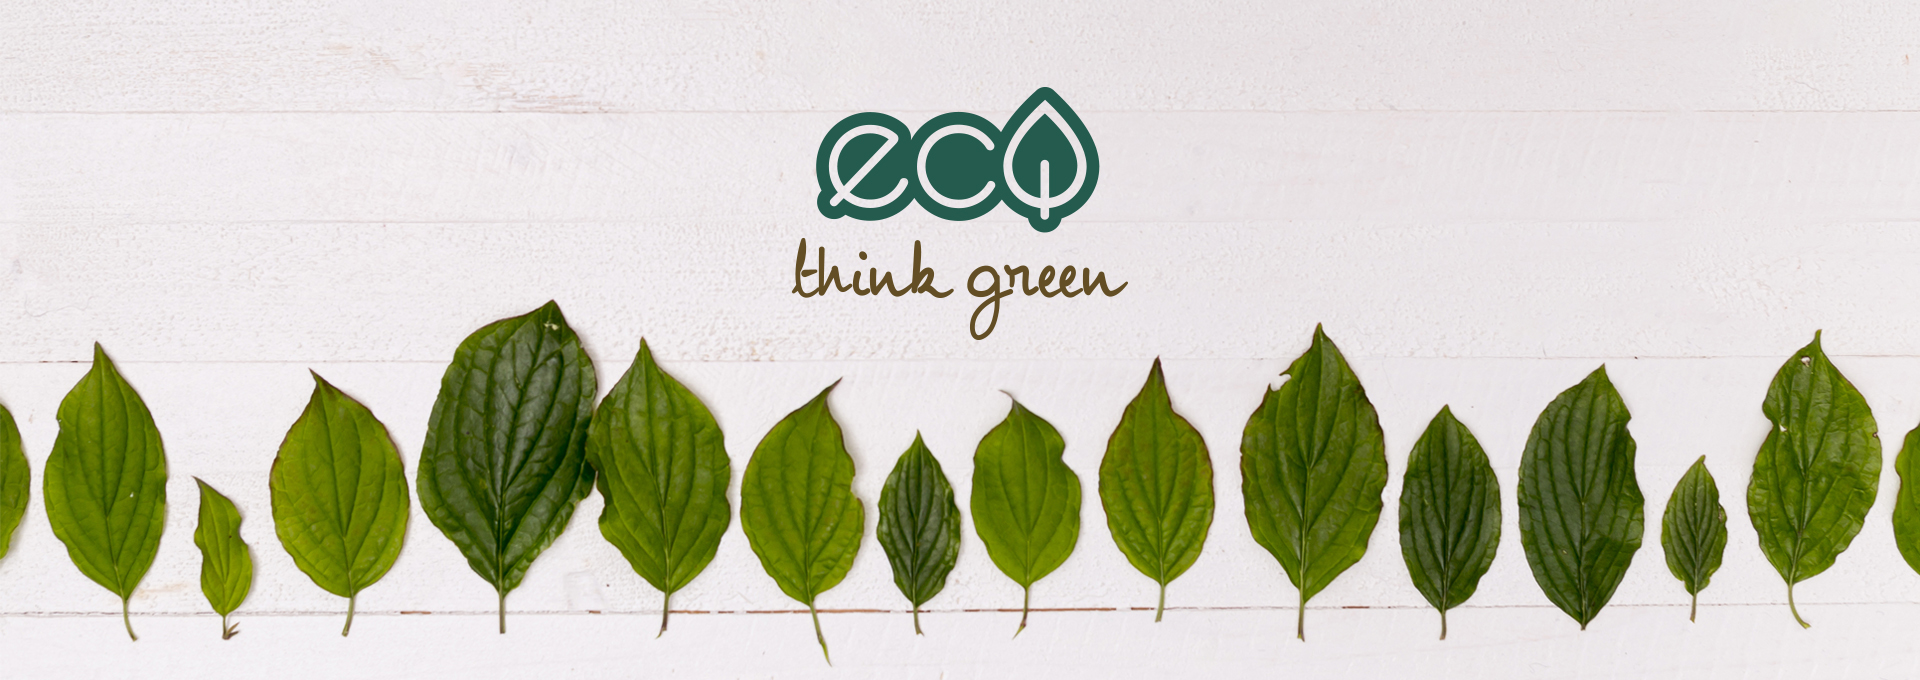 Eco think green LANDE